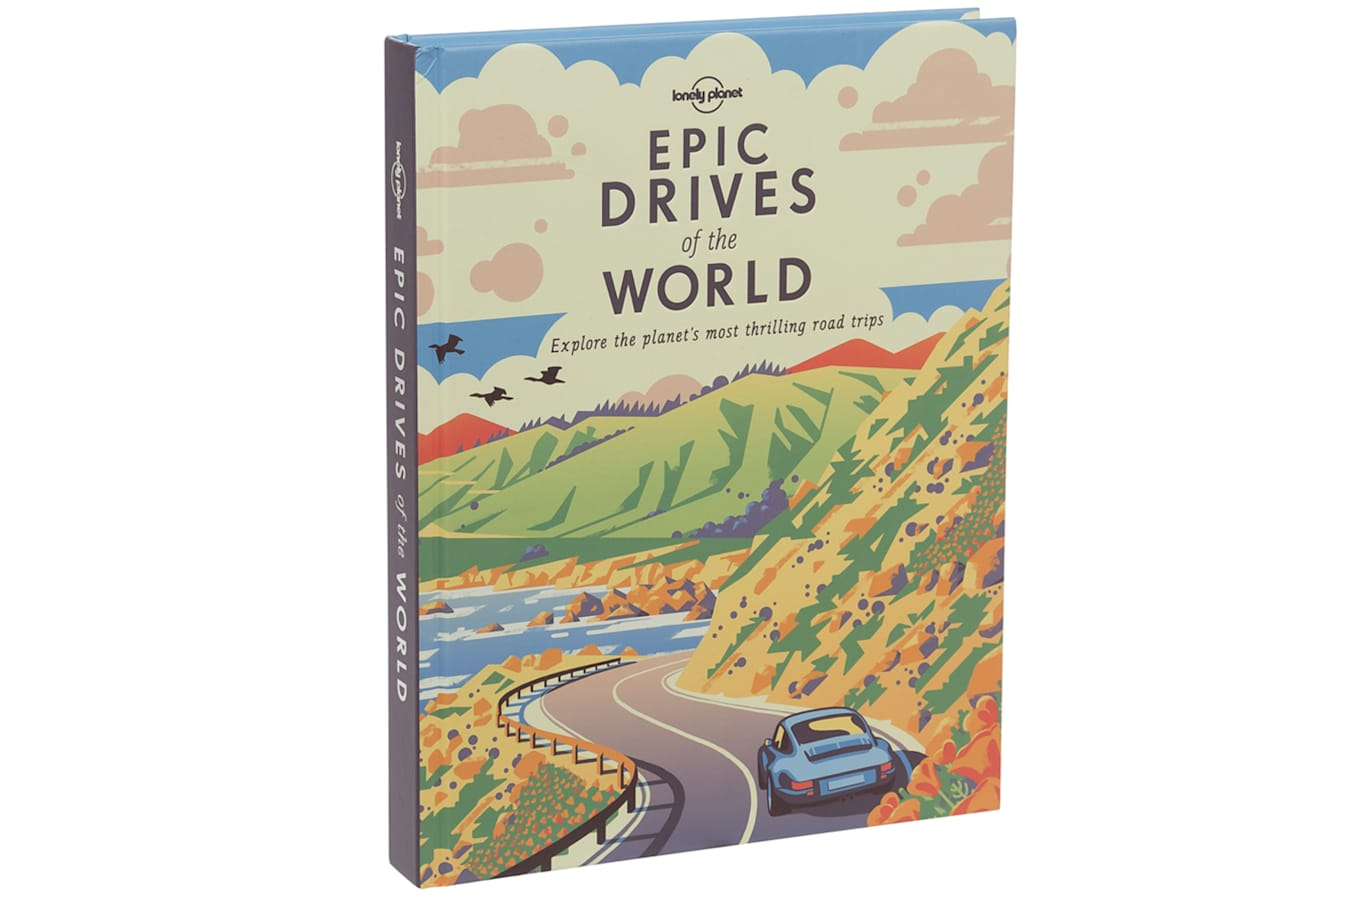 Epic drives of the world lonely planet